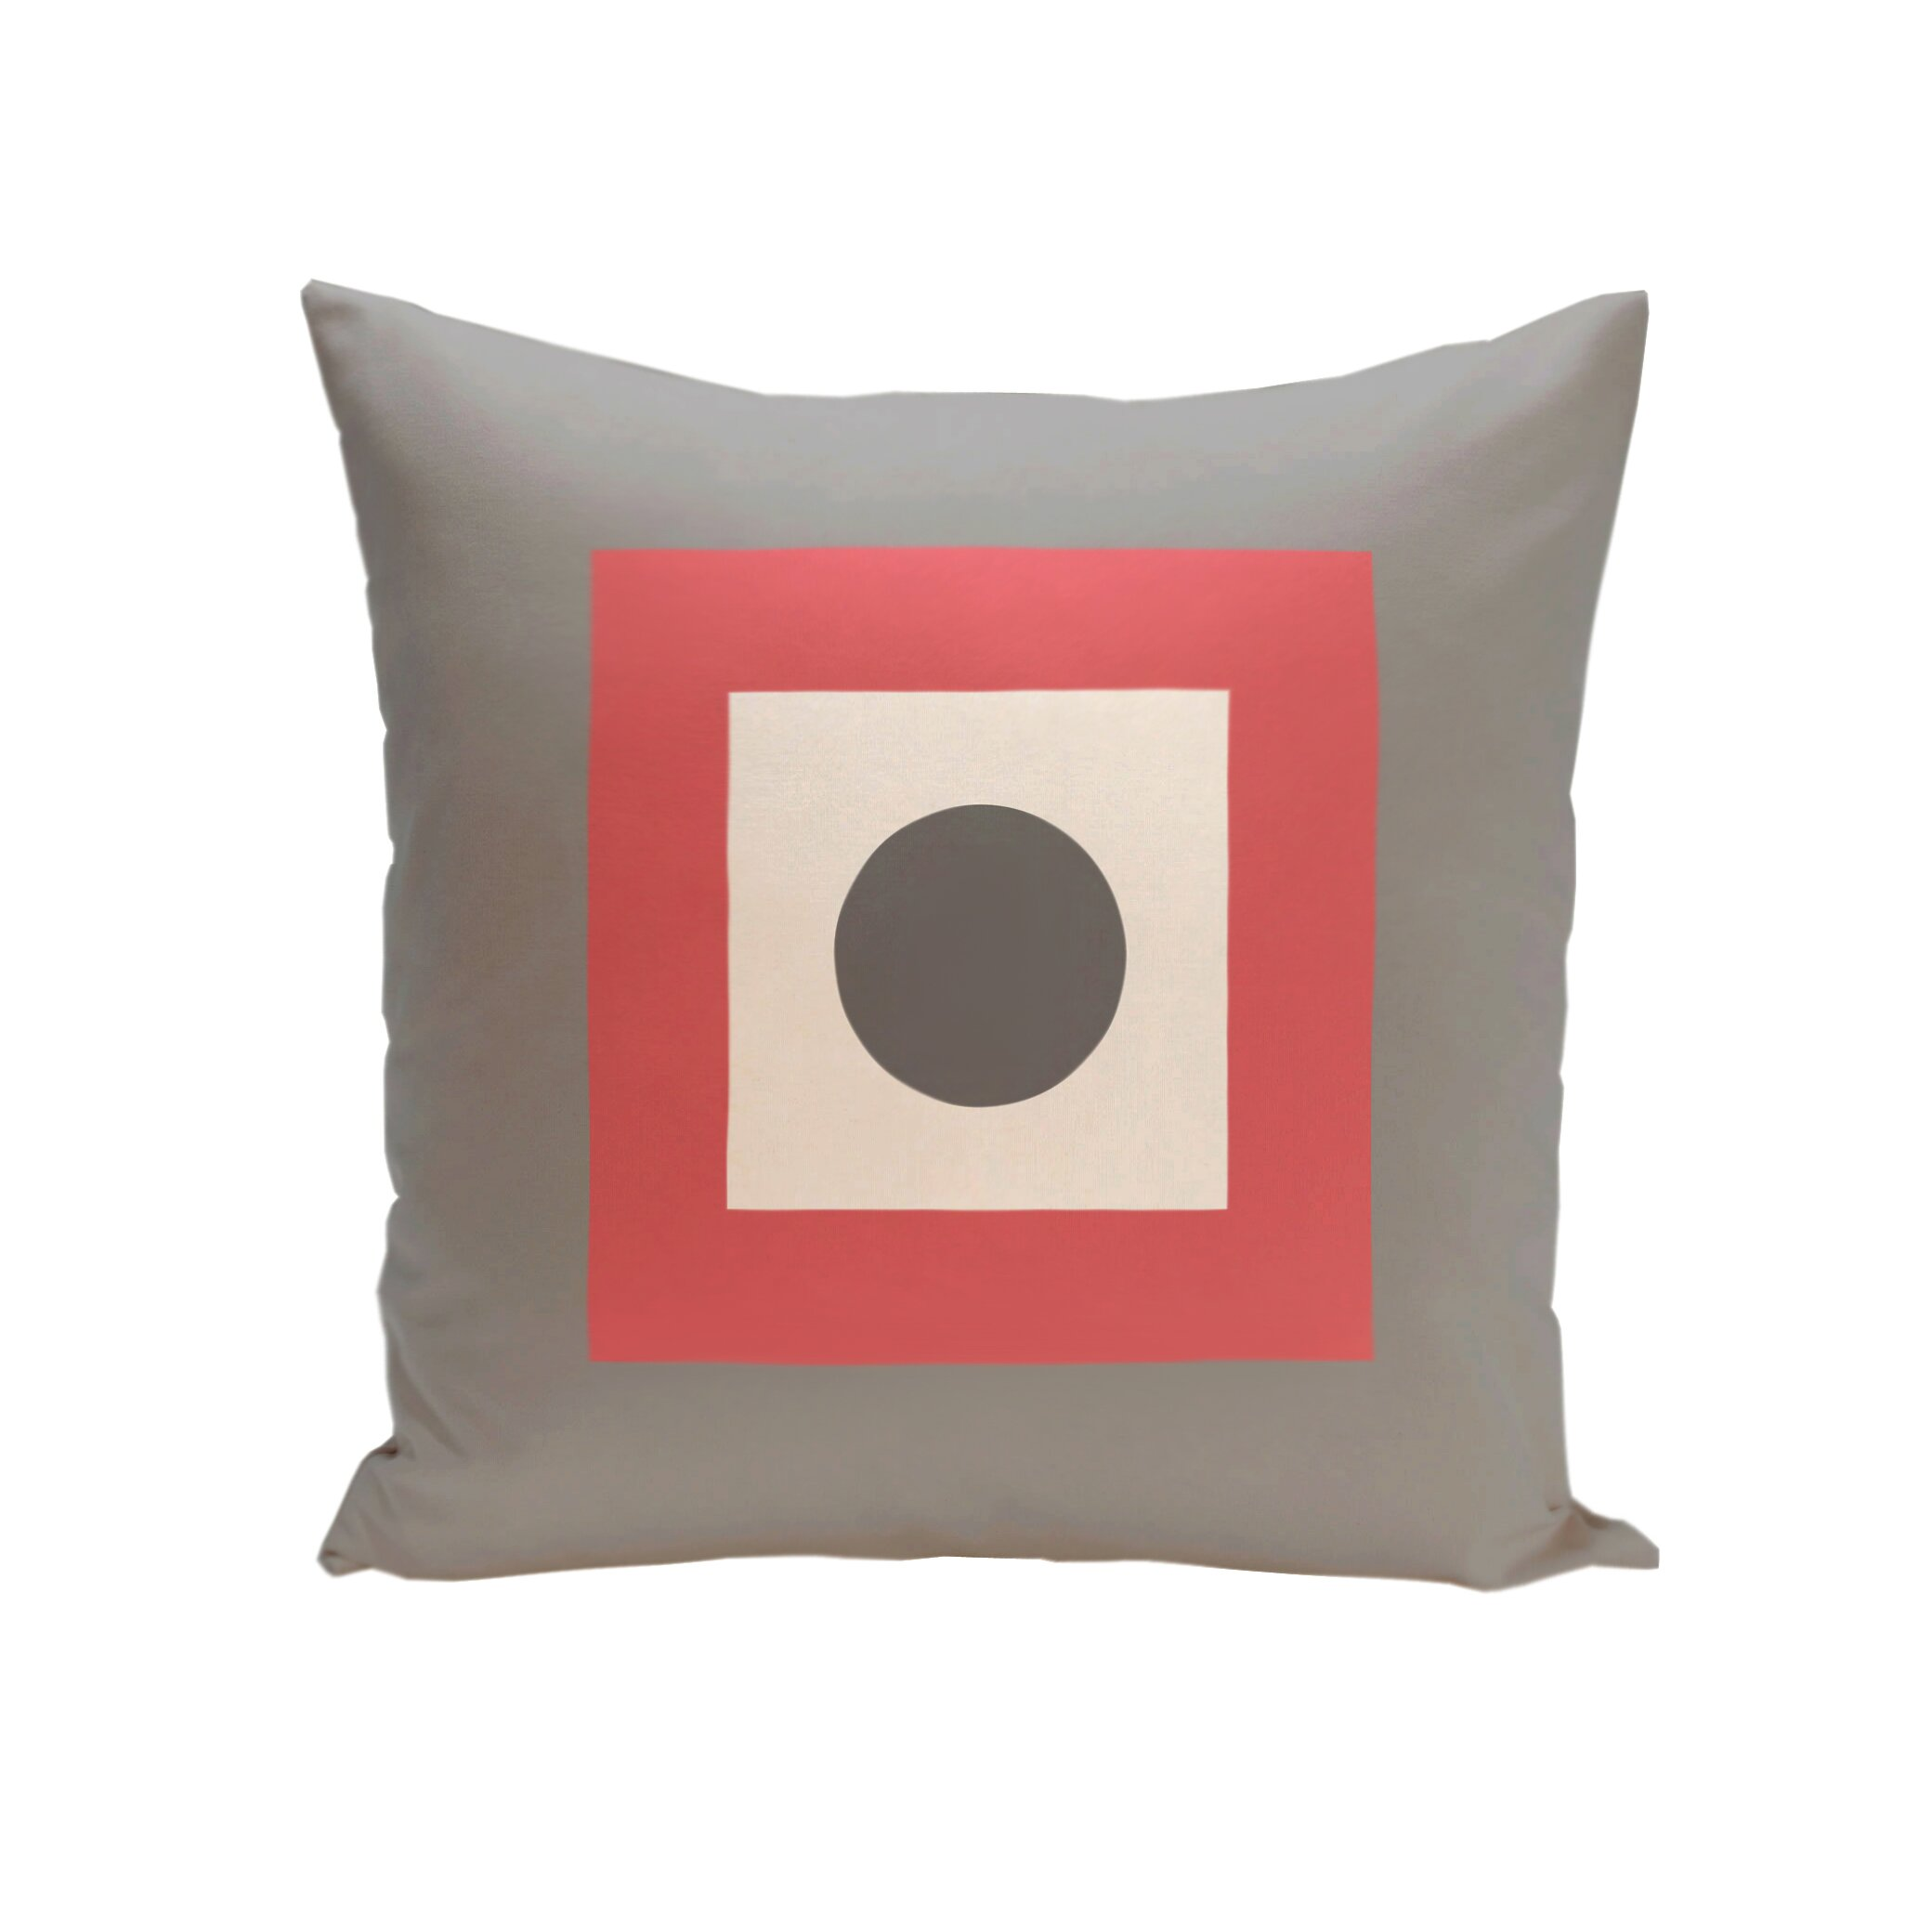 Throw Pillow Gallery : Varick Gallery Carnell Decorative Throw Pillow & Reviews Wayfair.ca